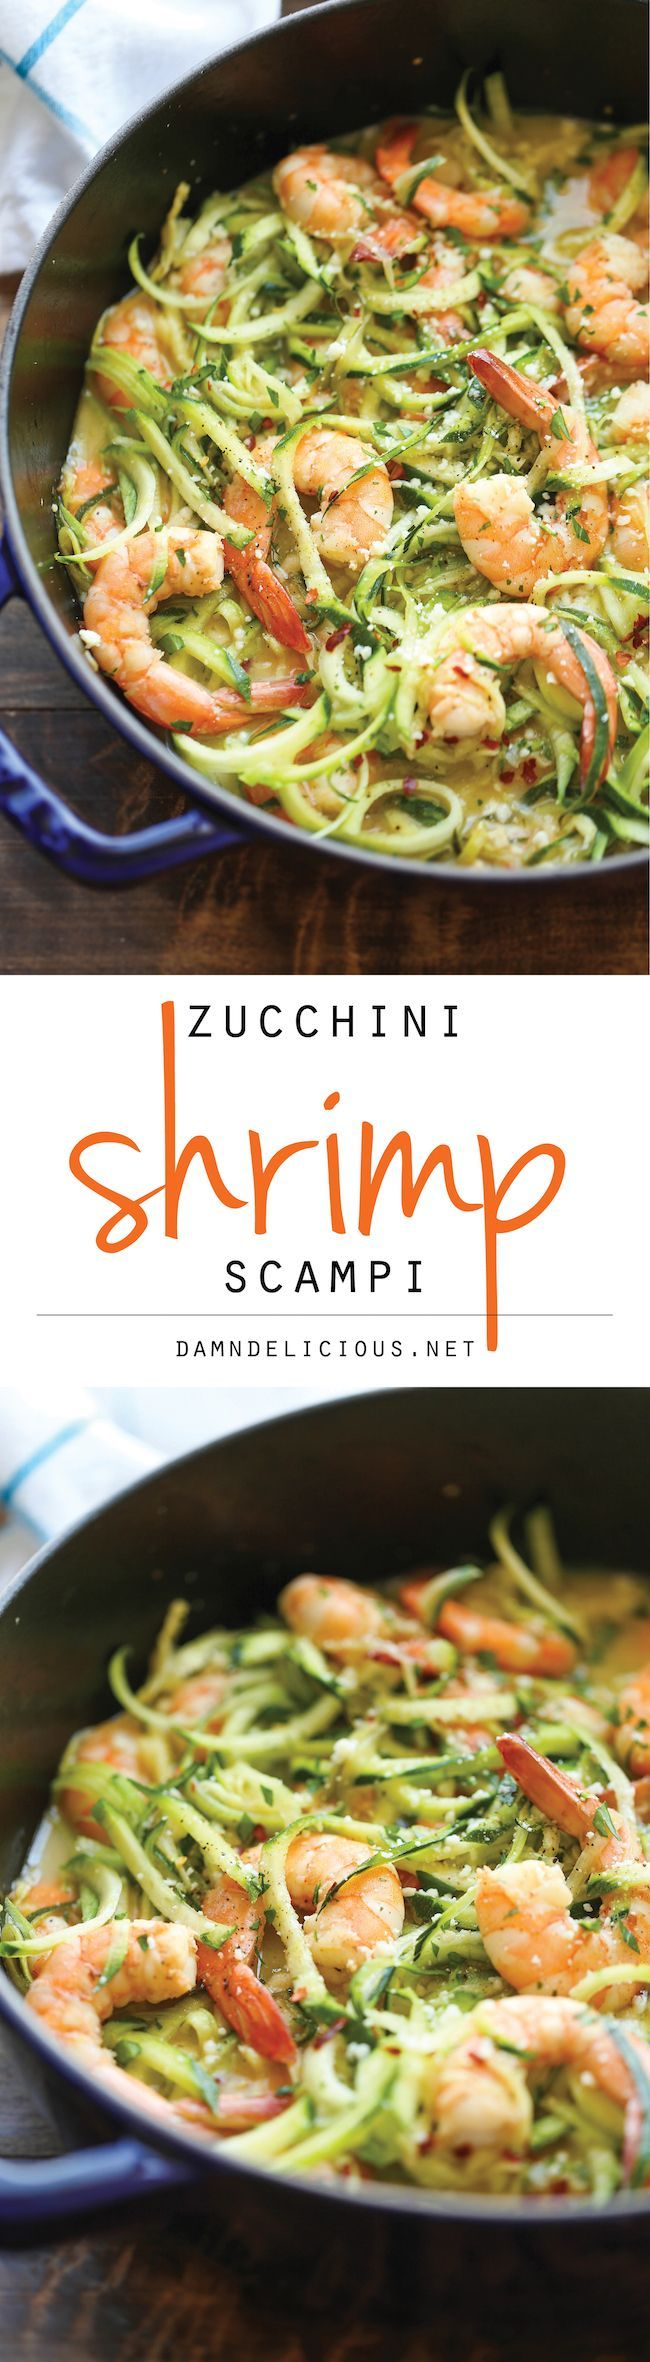 Clean Eating Zucchini Shrimp Scampi Recipe plus 28 more of the most pinned Clean Eating recipes.